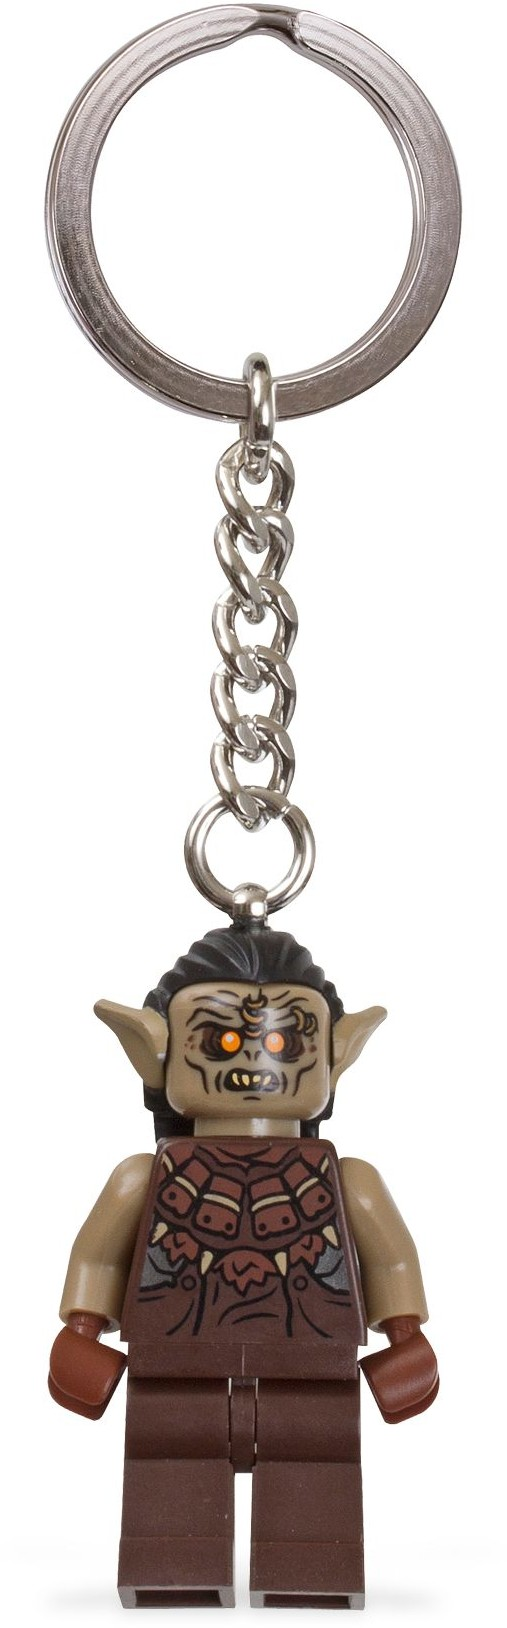 Lego Keyring Key Chain Lord of the Rings Harry Potter Super Heroes NEW